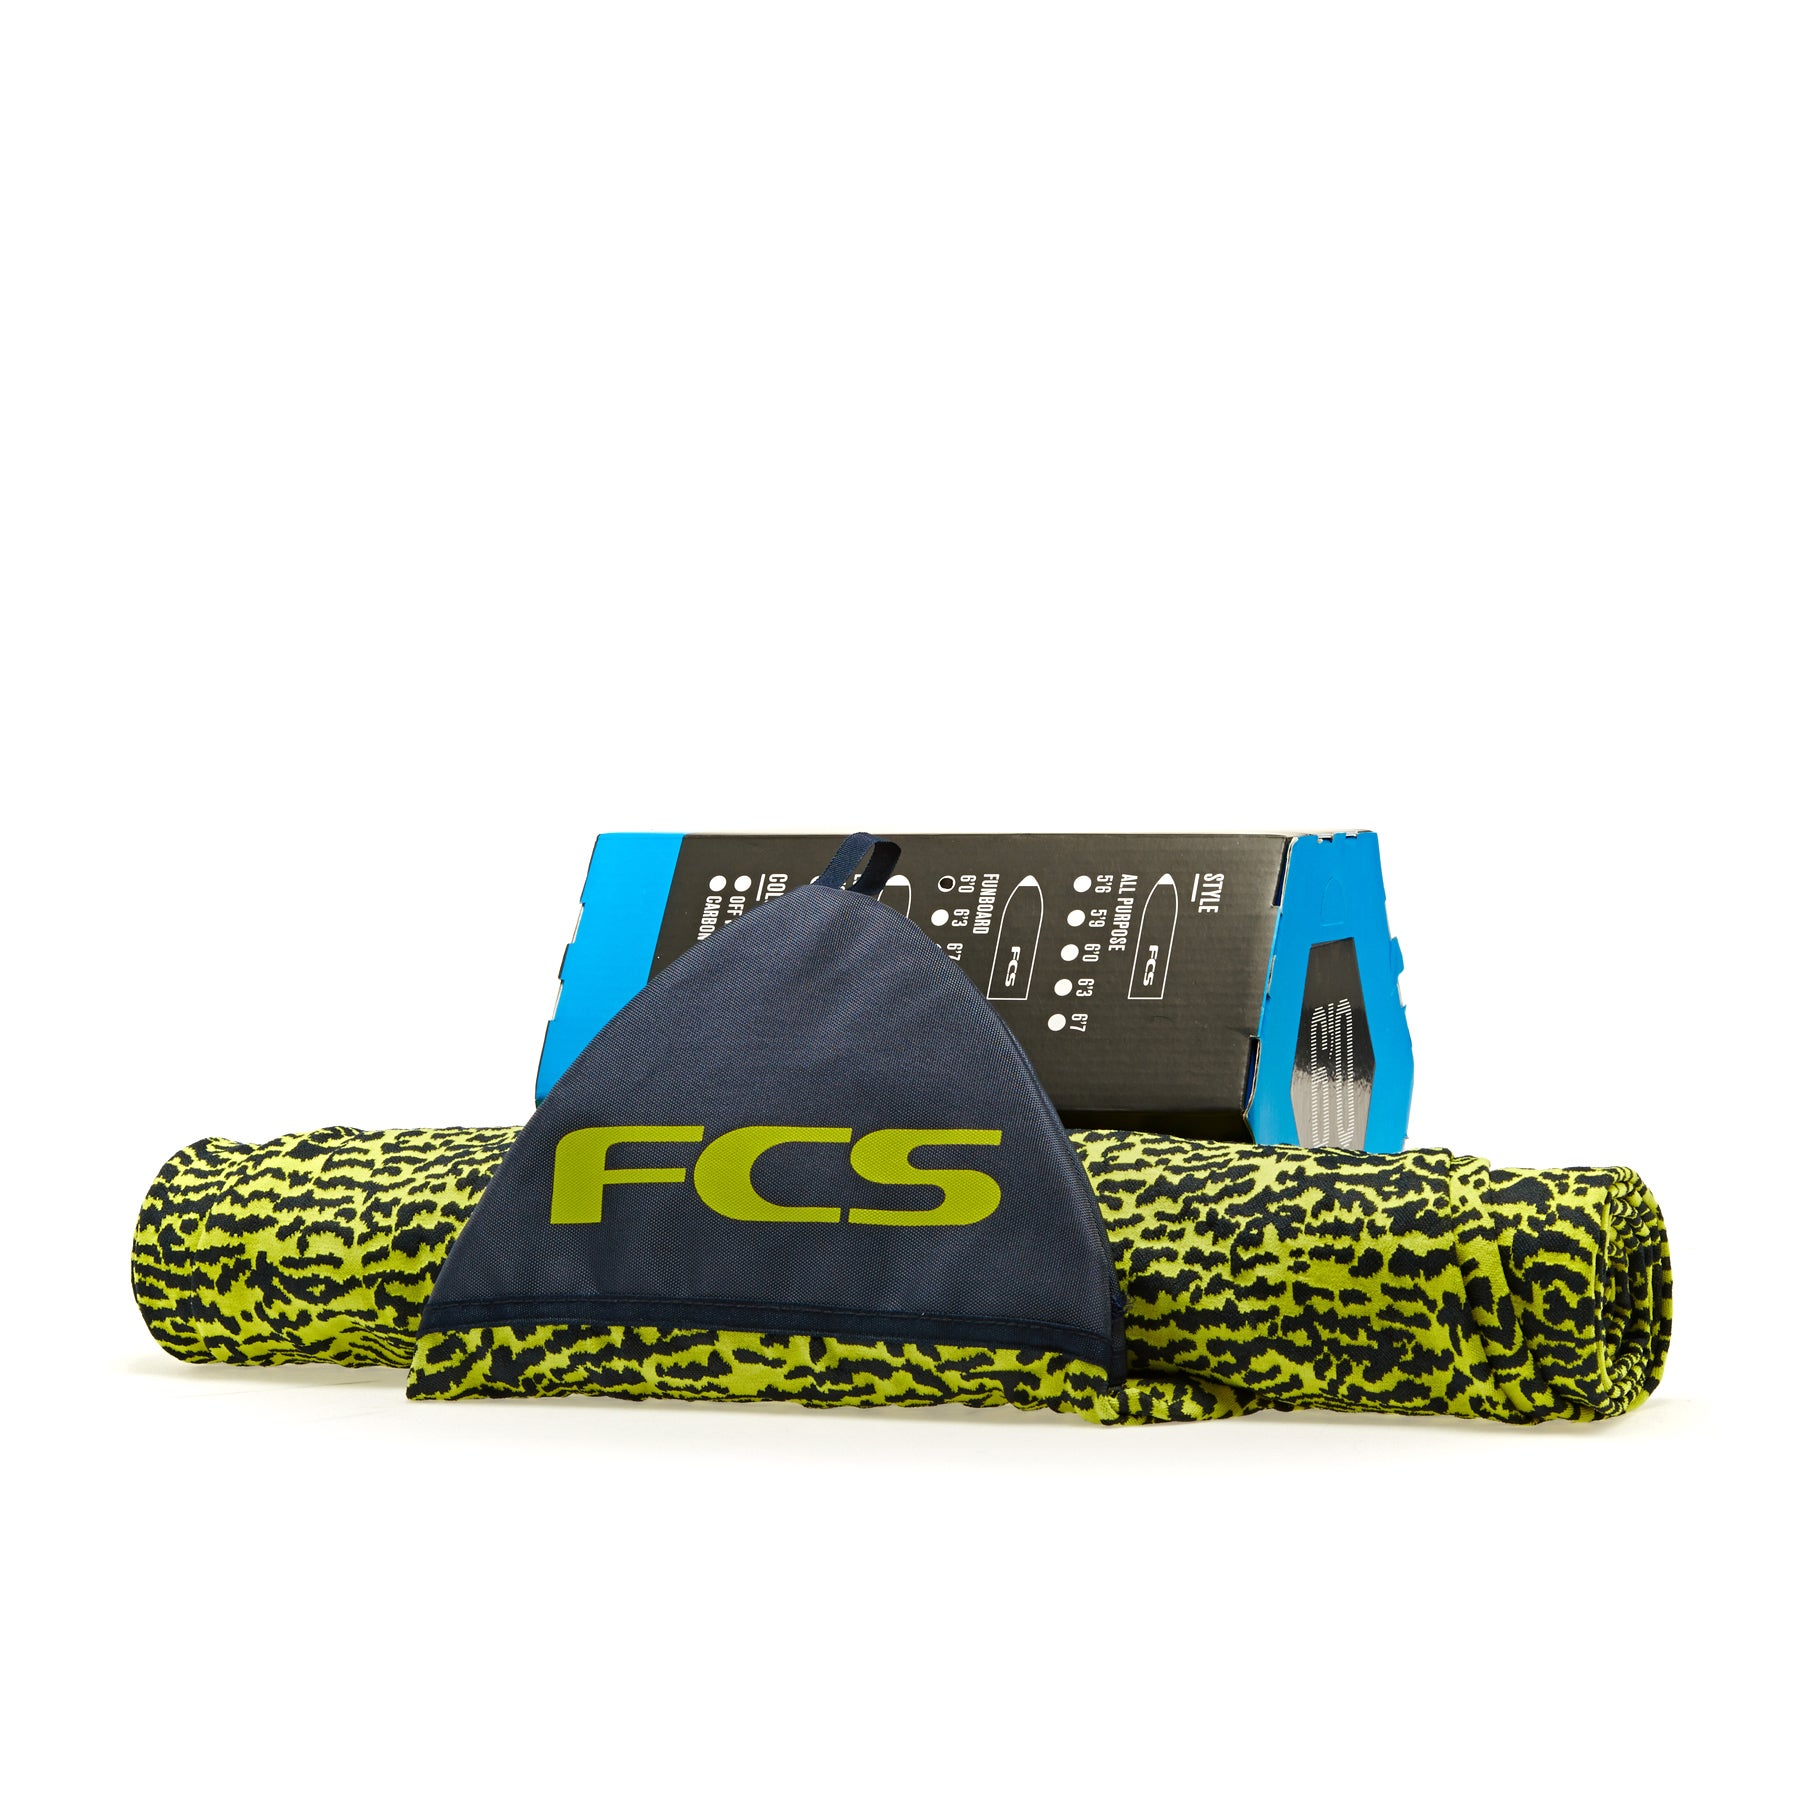 FCS Stretch Funboard Sock Surfboard Bag - Ice Yellow